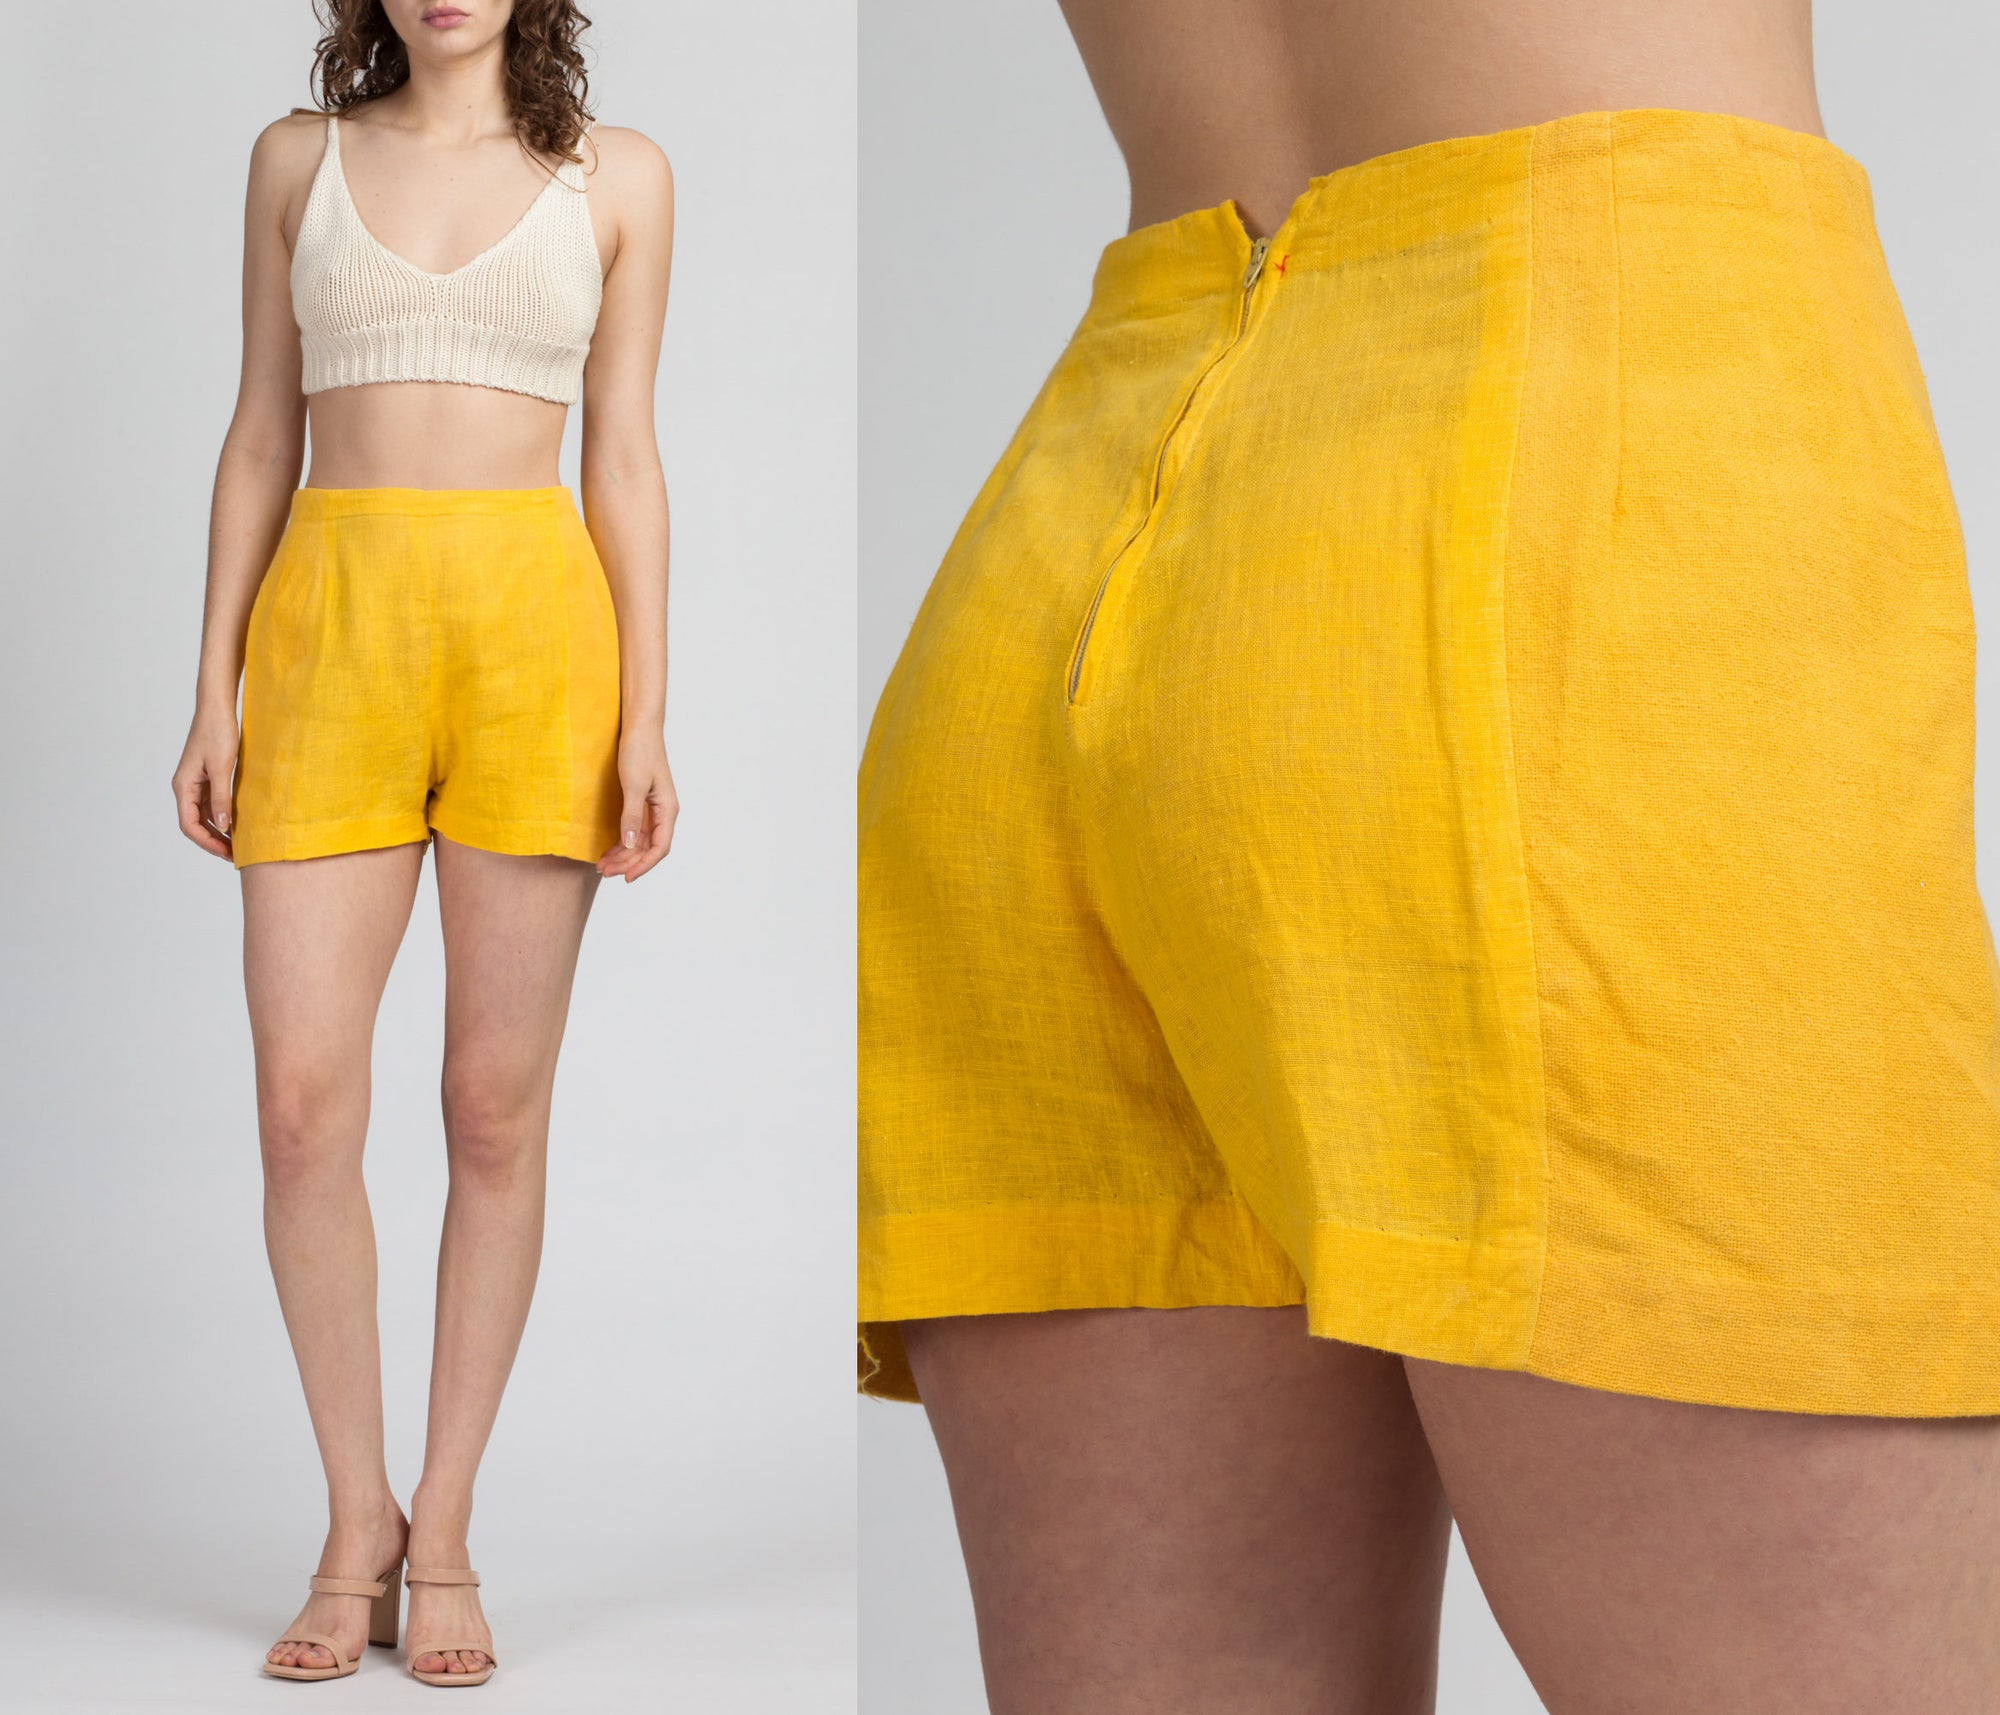 60s 70s Yellow Linen Shorts - Medium, 28""